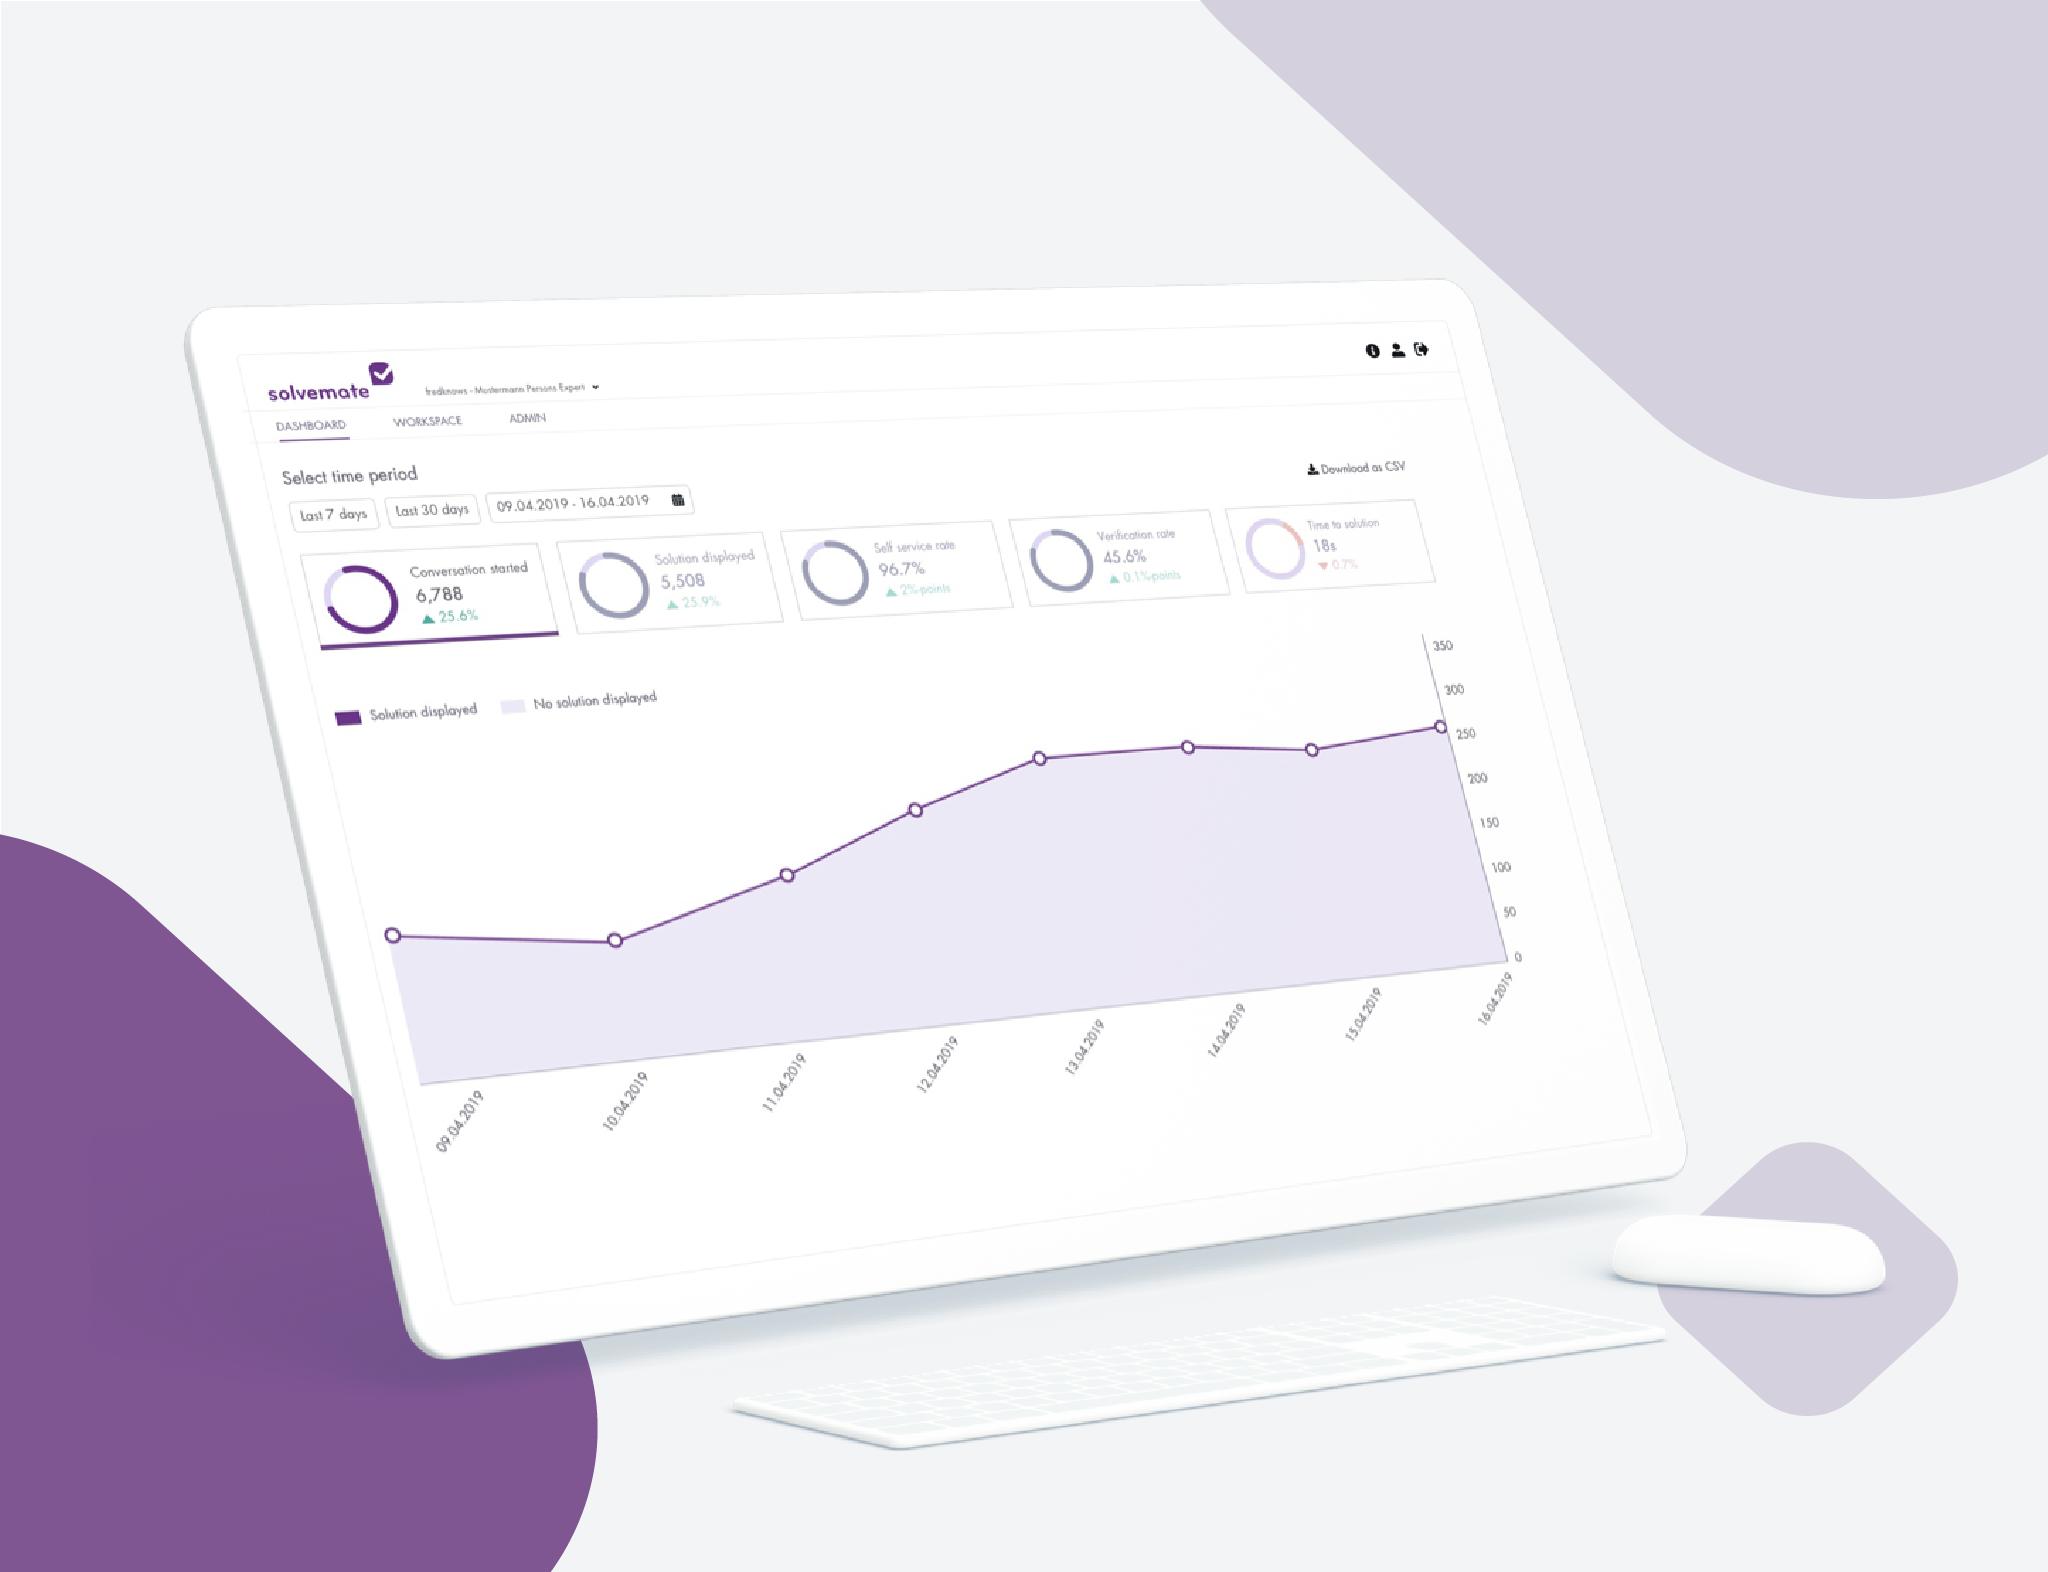 Through Solvemate's dashboard you can generate deep insights into the customer journey to further optimise your service experience. And Solvemate's Customer Success team is there to provide market insights and guide you to become a true chatbot expert.